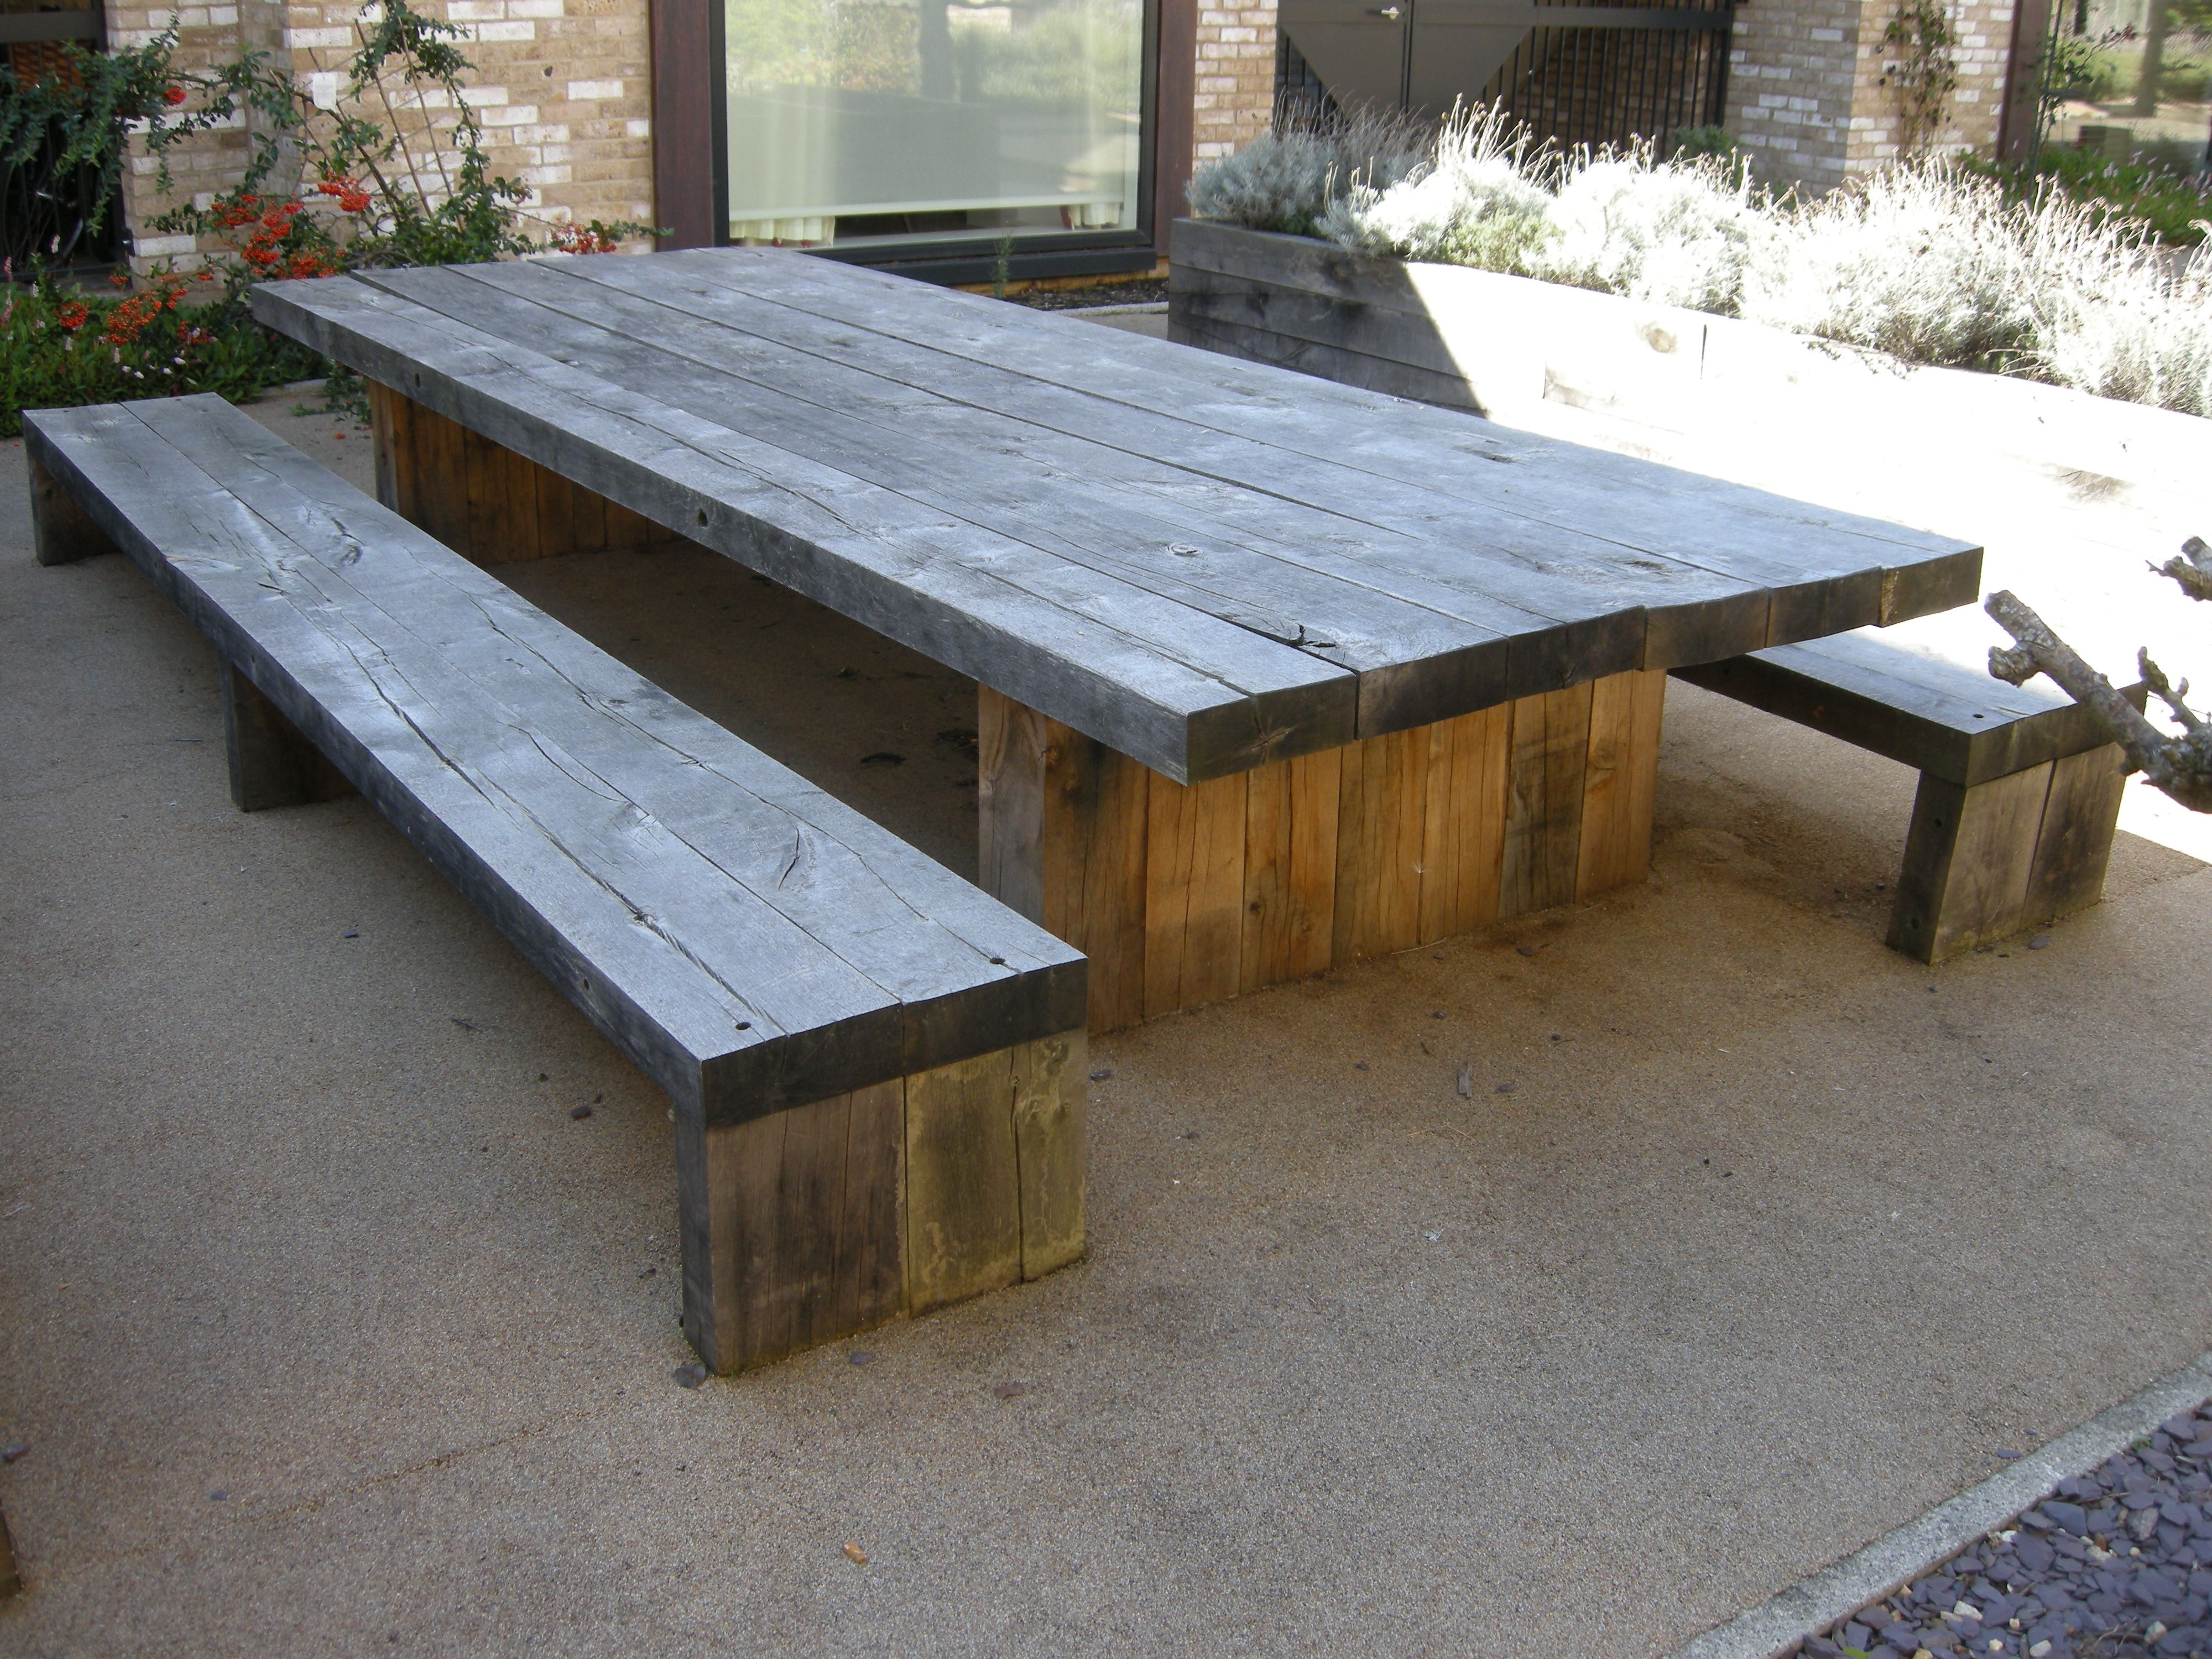 Garden-and-patio-large-and-long-diy-rustic-solid-wood